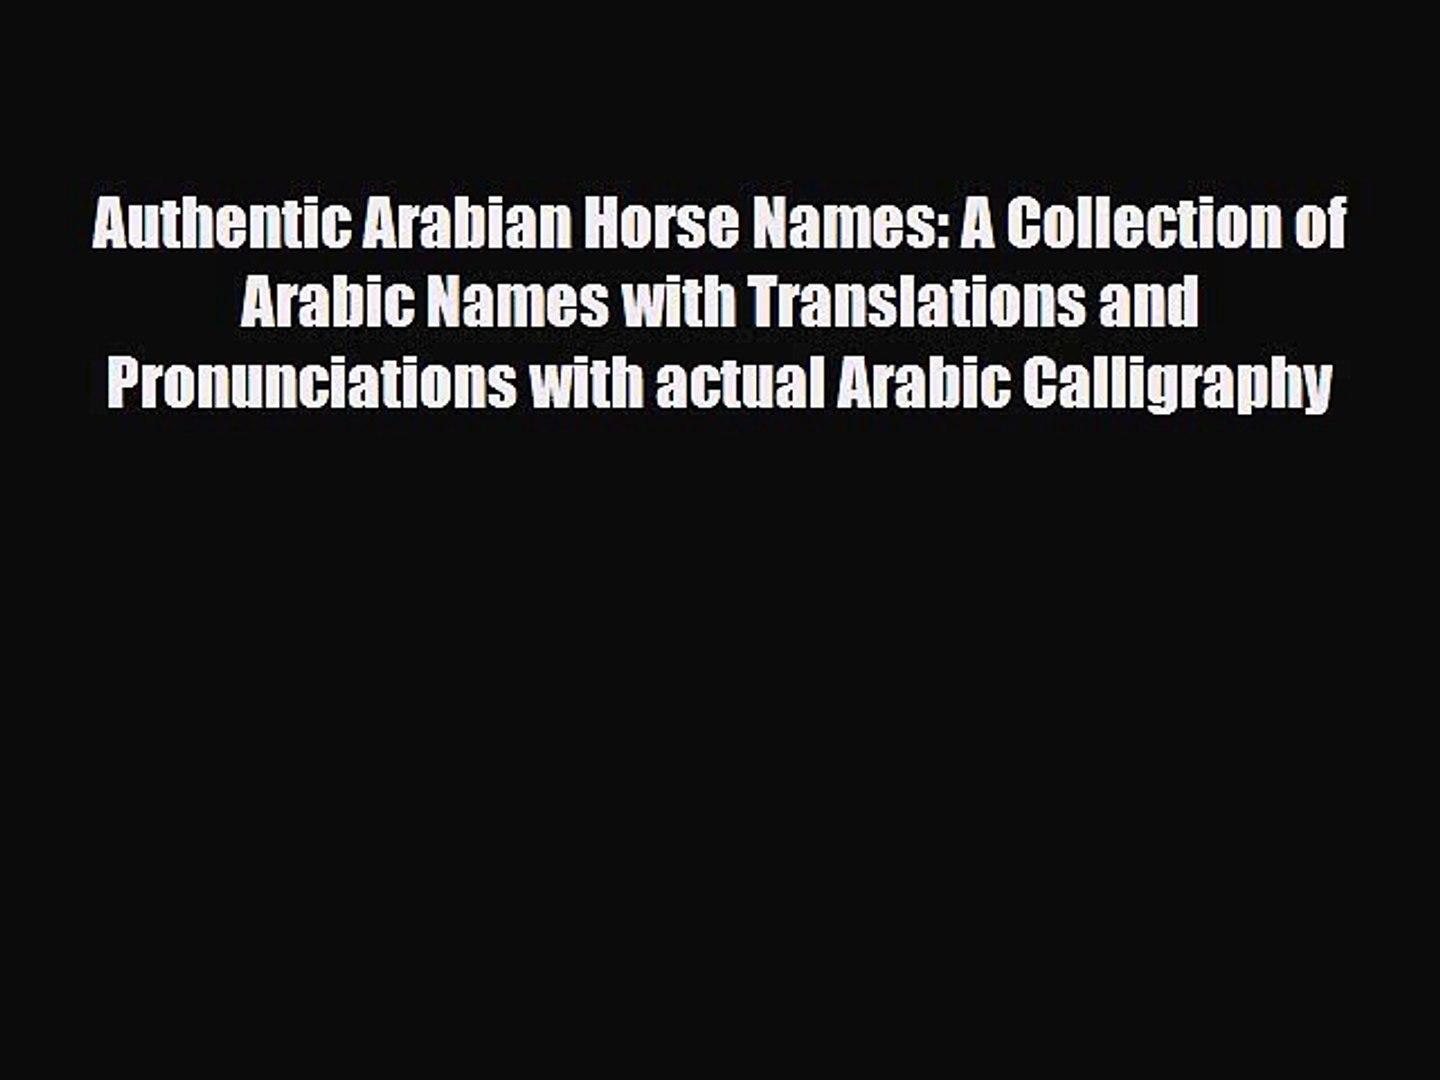 Pdf Authentic Arabian Horse Names A Collection Of Arabic Names With Translations And Pronunciations Video Dailymotion